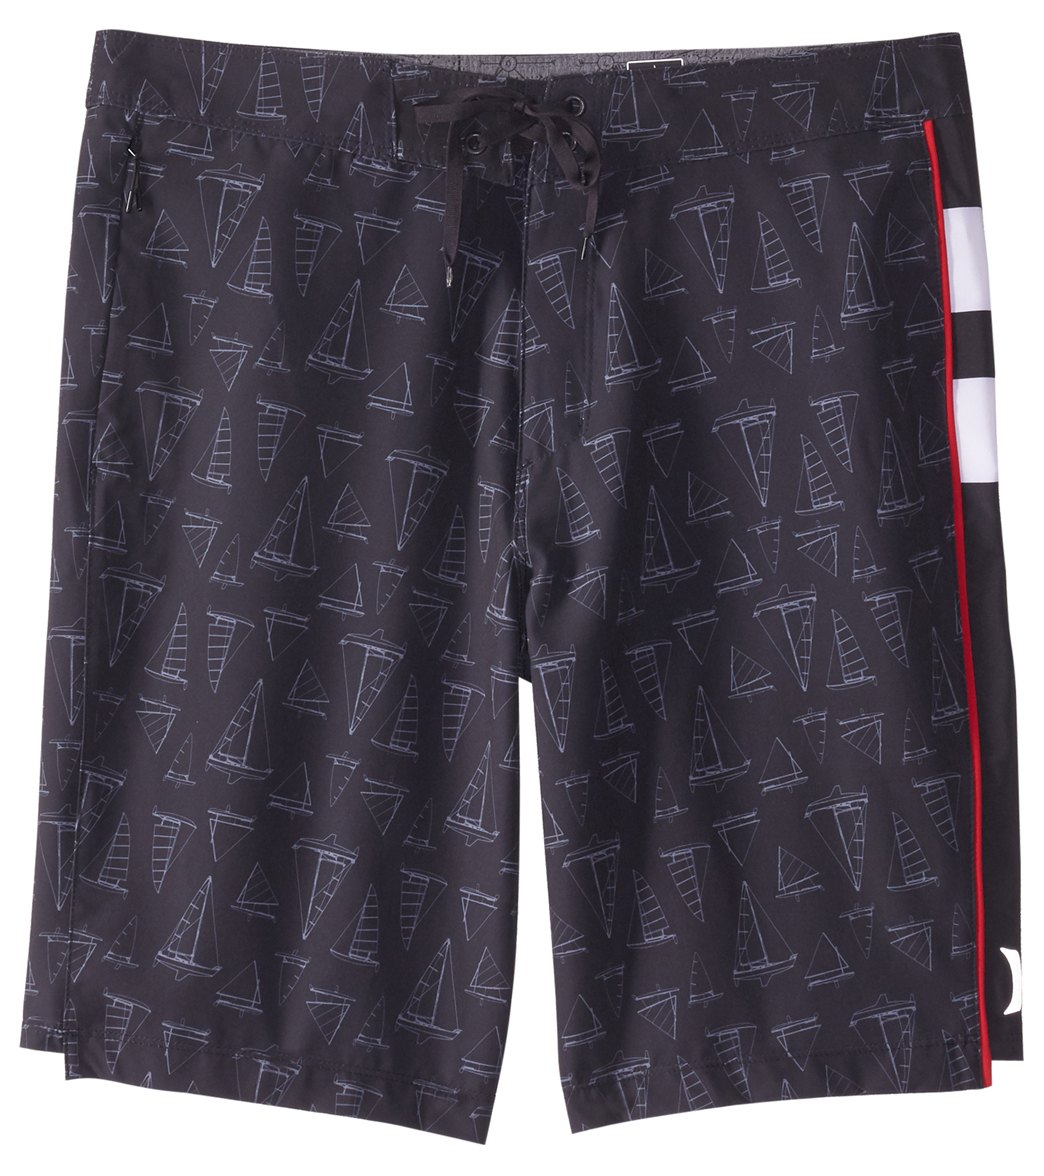 9b3b2e8e0bc Hurley Men s Phantom JJF Maritime Boardshort at SwimOutlet.com - Free  Shipping